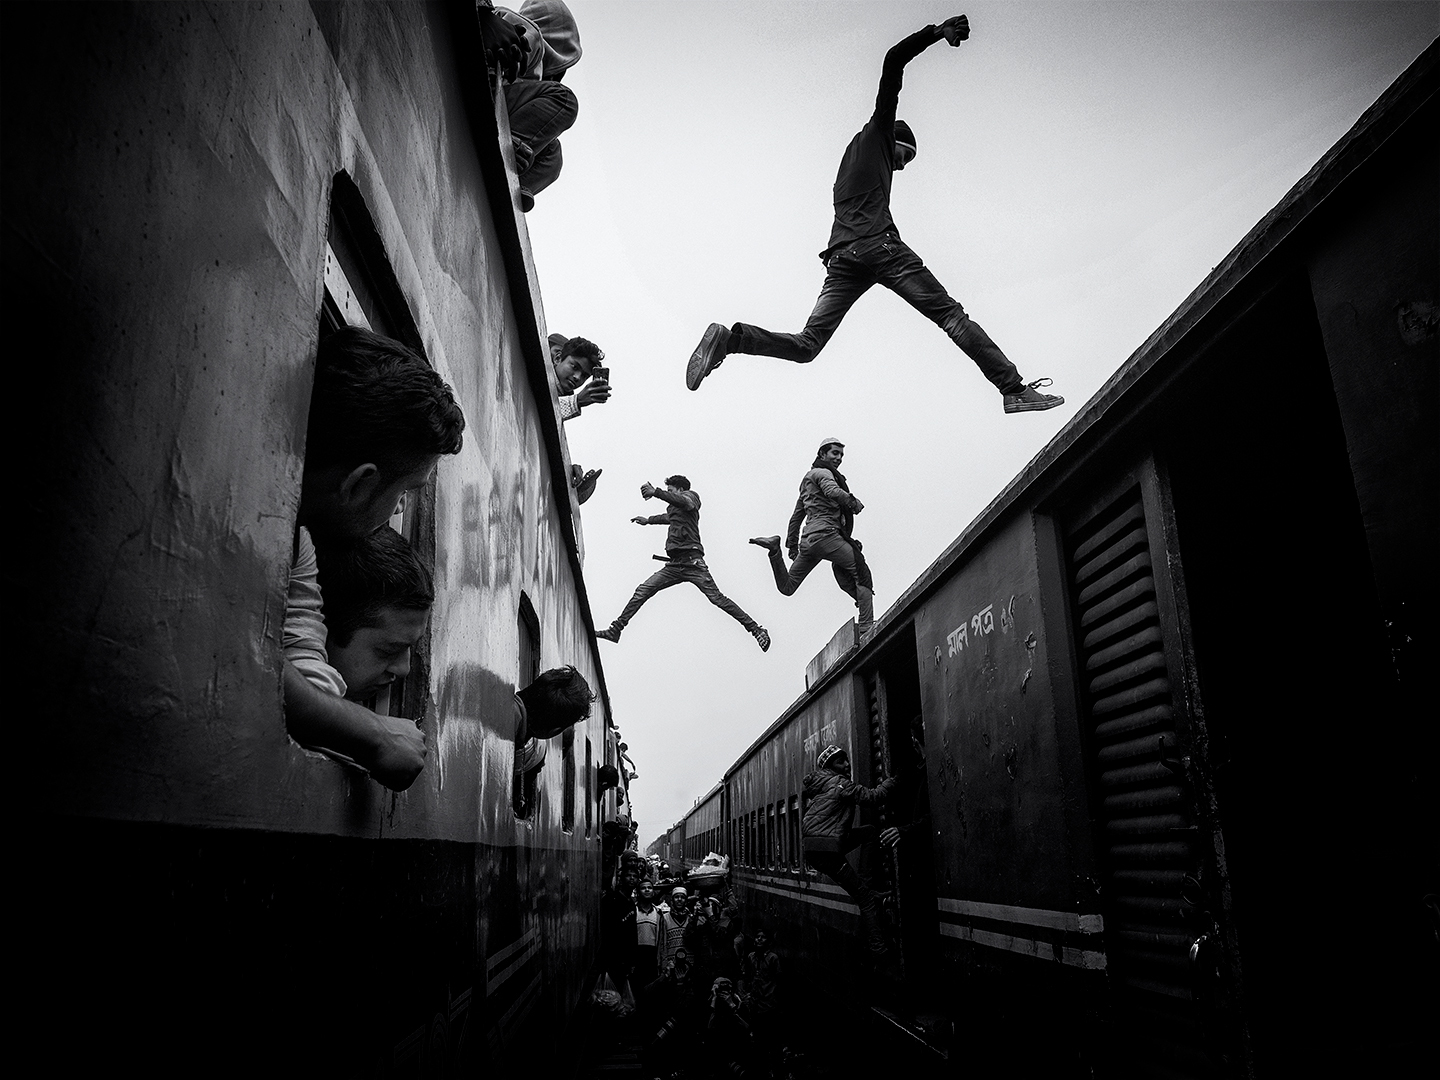 Train jumpers / Bangladéš, 2018